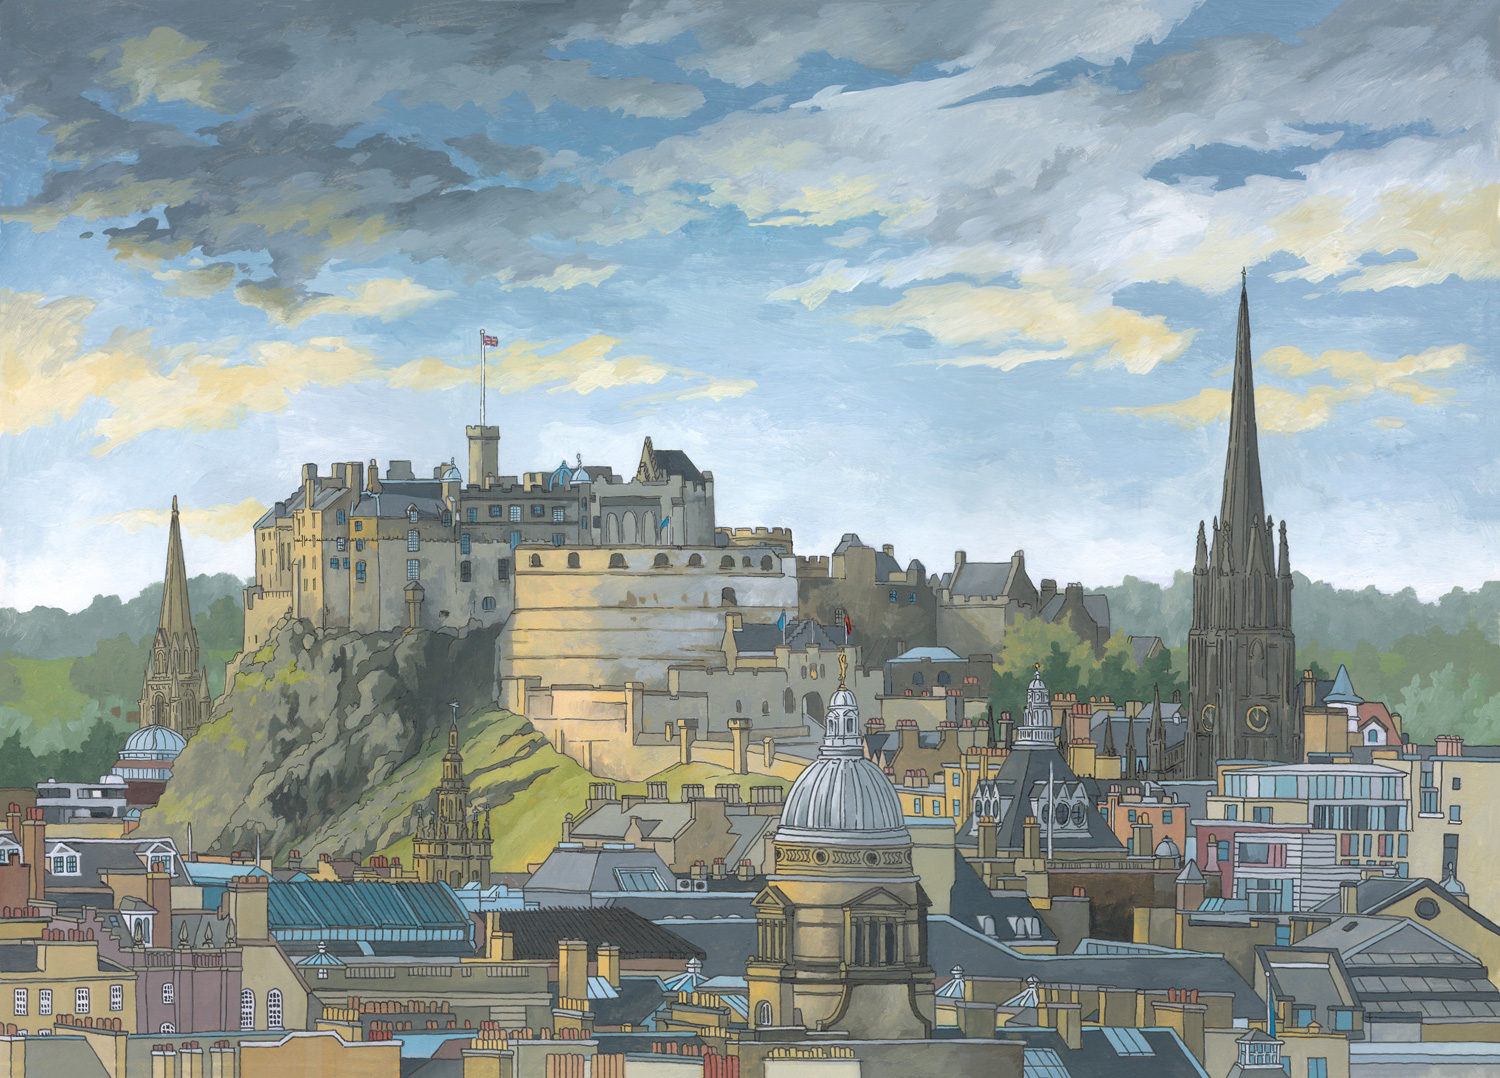 Edinburgh Castle by illustrator Jonathan Chapman